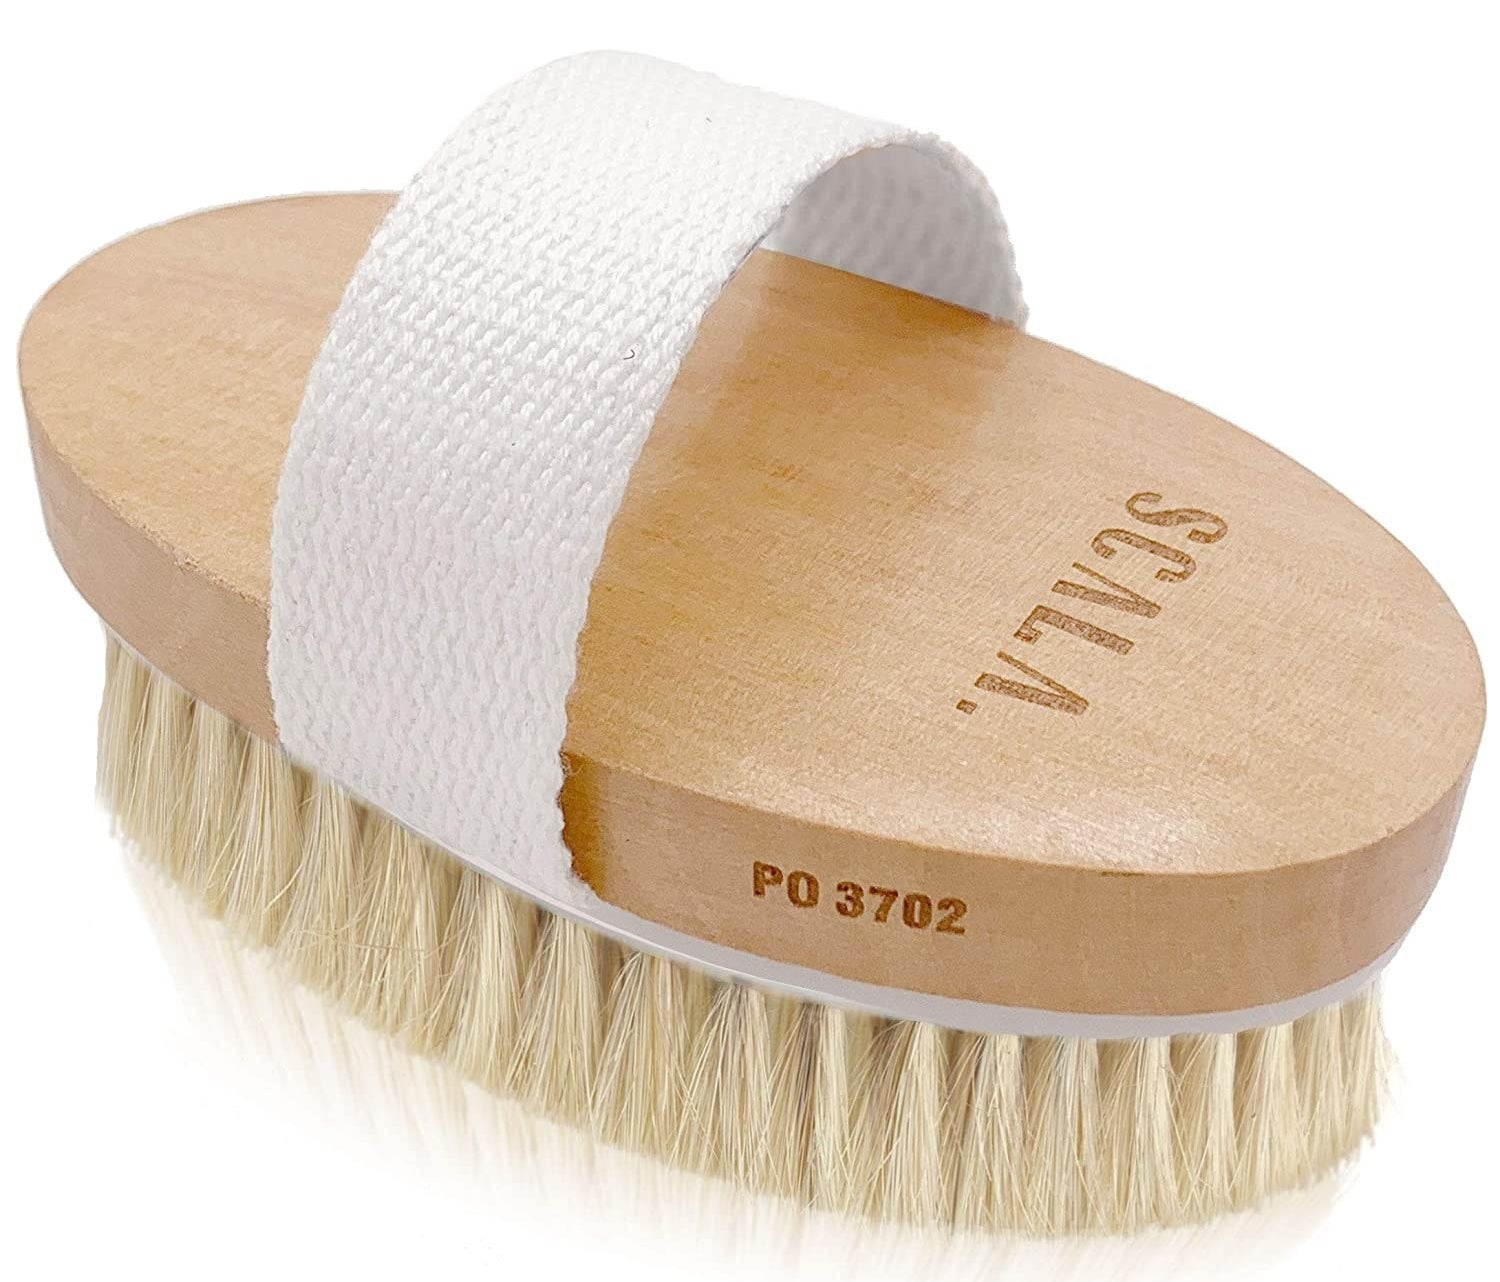 The wet and dry body brush with handle strap and straw-like bristles